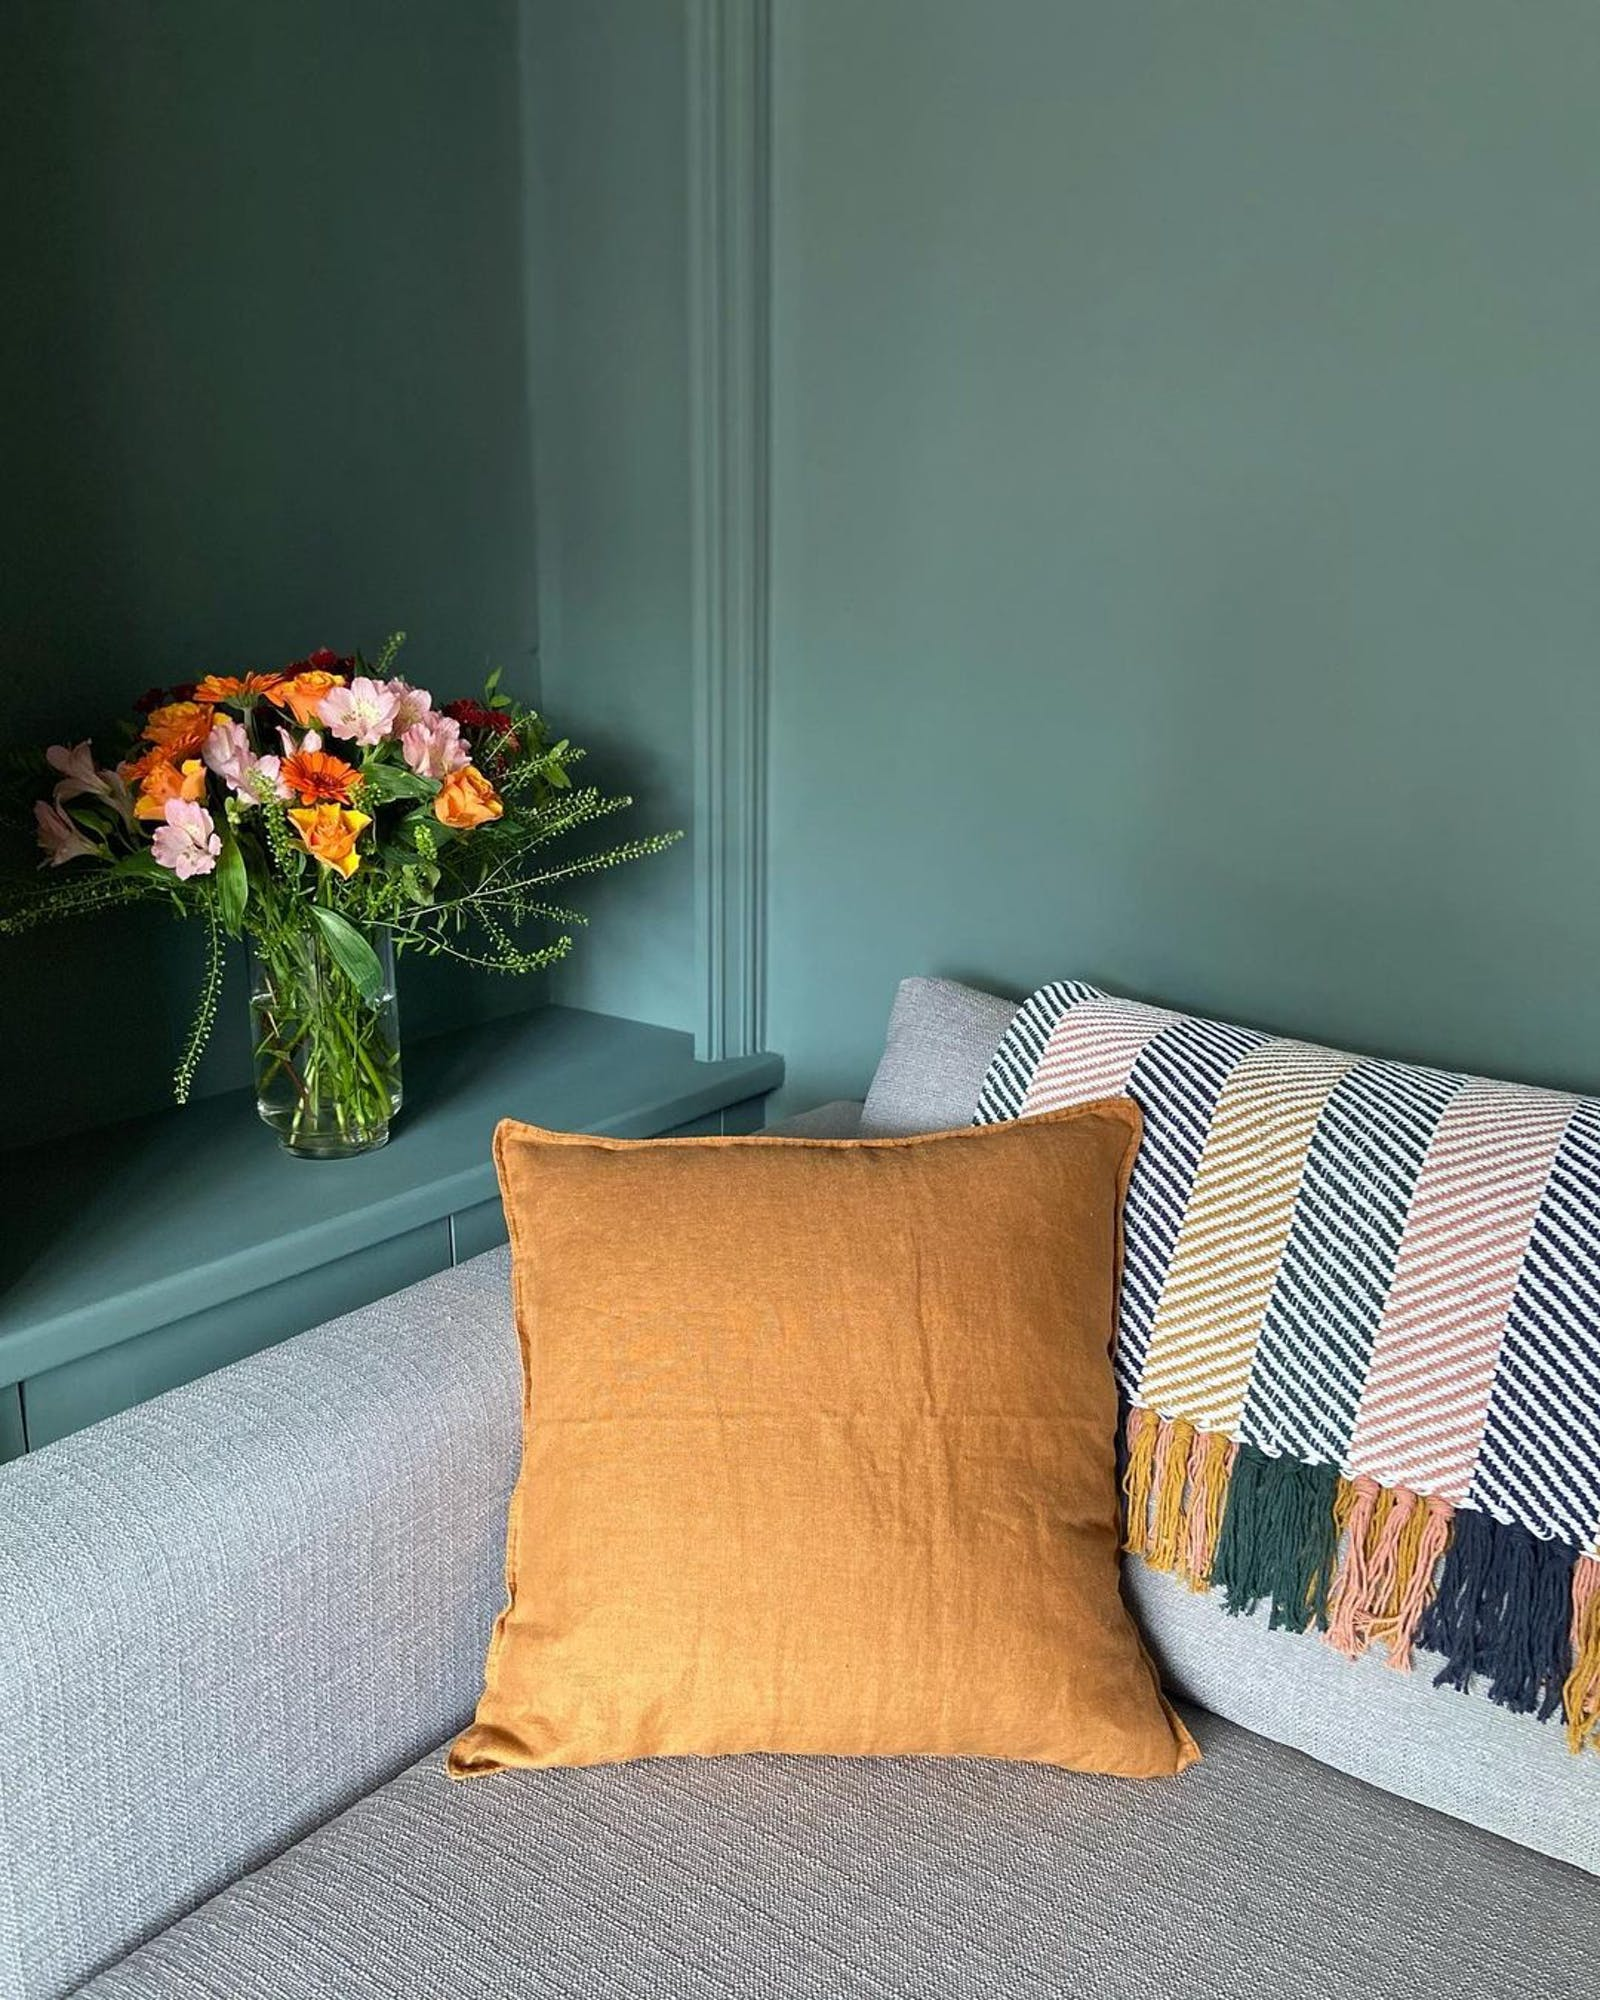 Living room painted in Lick Green 03 painted walls with bright yellow cushion and flowers in a vase